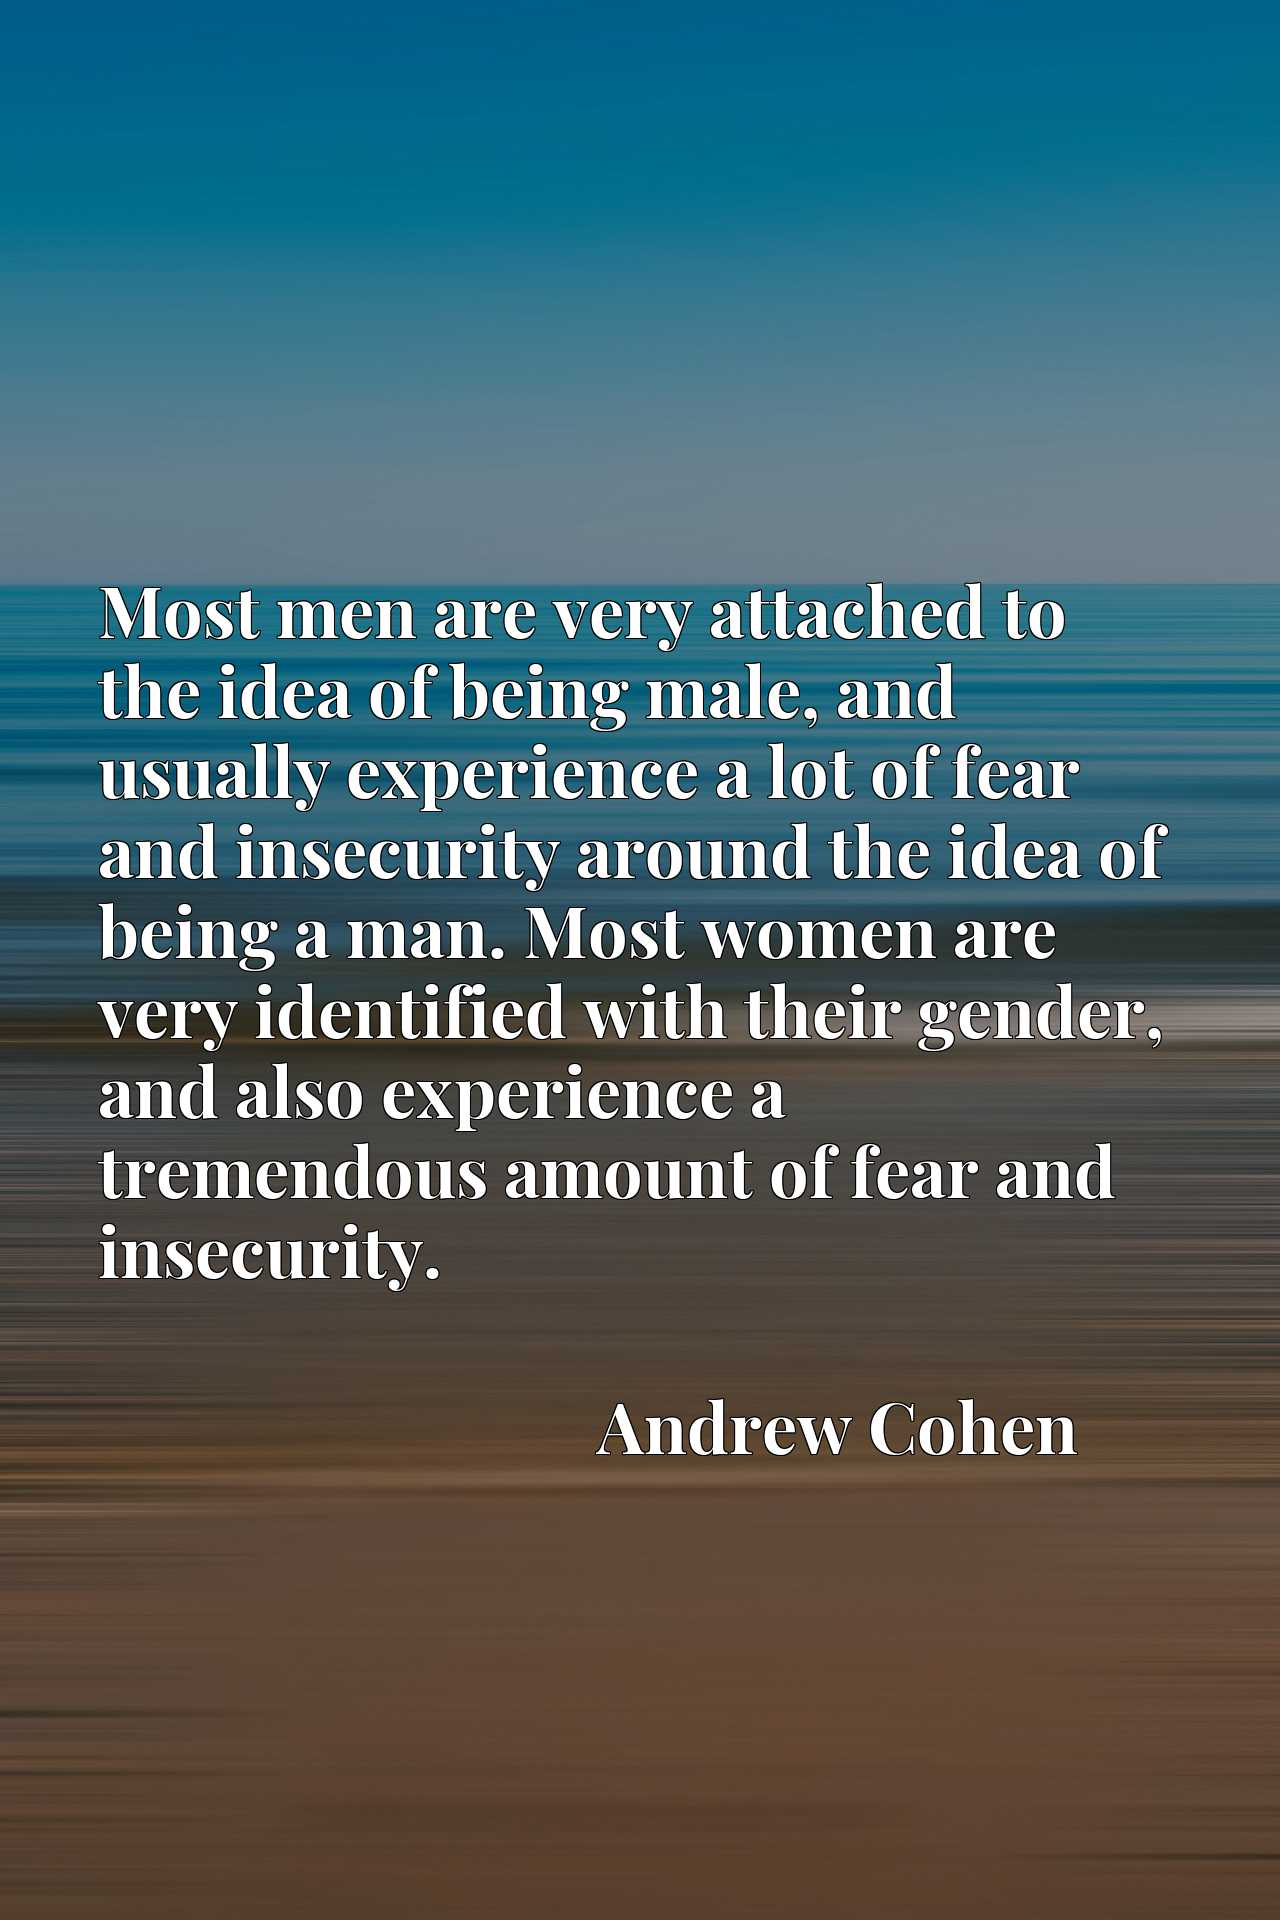 Most men are very attached to the idea of being male, and usually experience a lot of fear and insecurity around the idea of being a man. Most women are very identified with their gender, and also experience a tremendous amount of fear and insecurity.